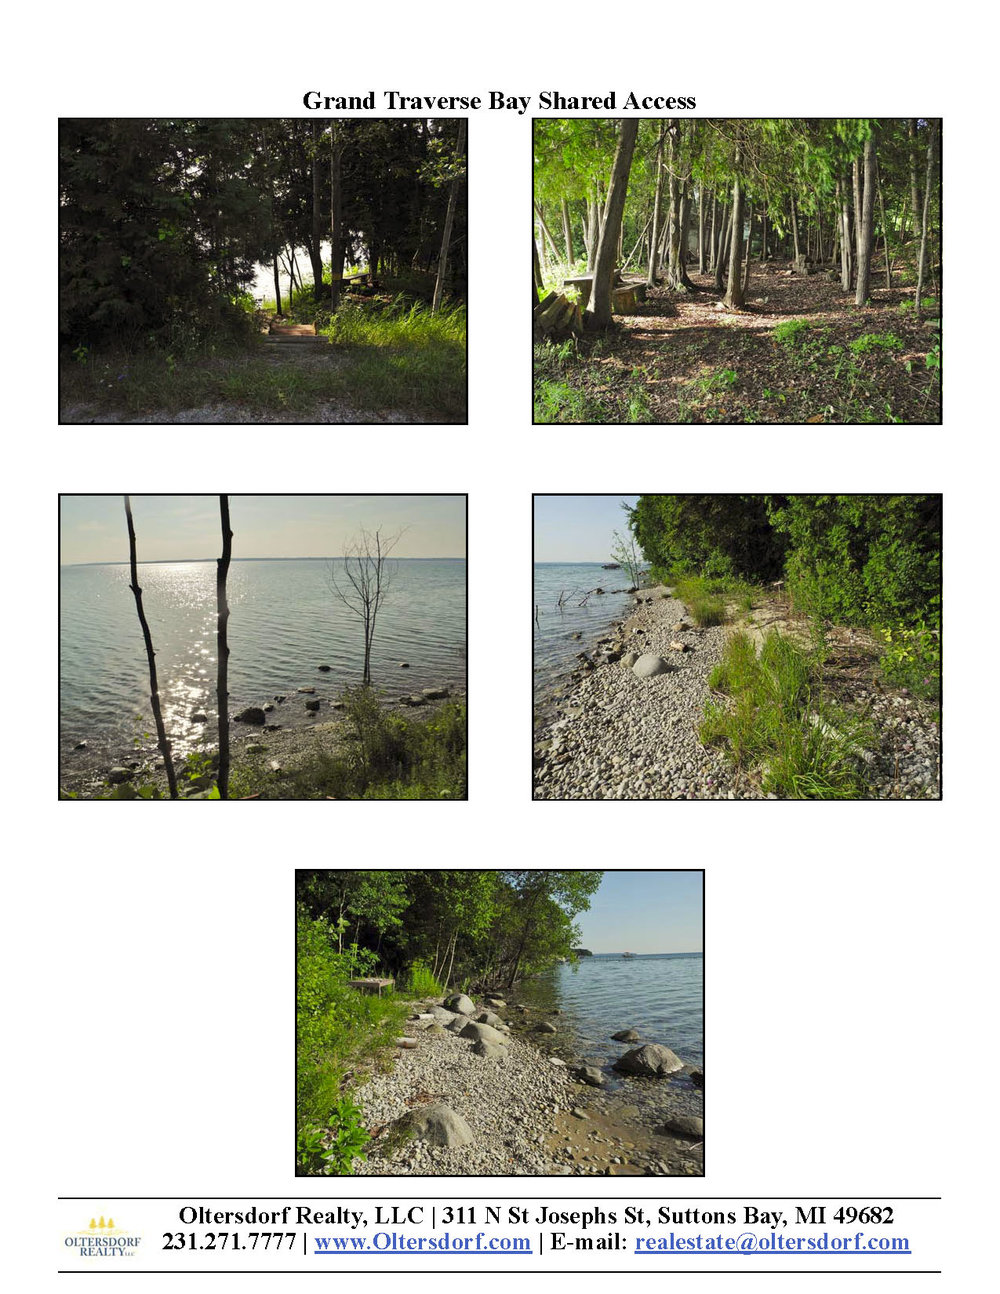 S Bay View Trail Lot 88, Suttons Bay - For Sale by Oltersdorf Realty LLC - Marketing Packet (4).jpg